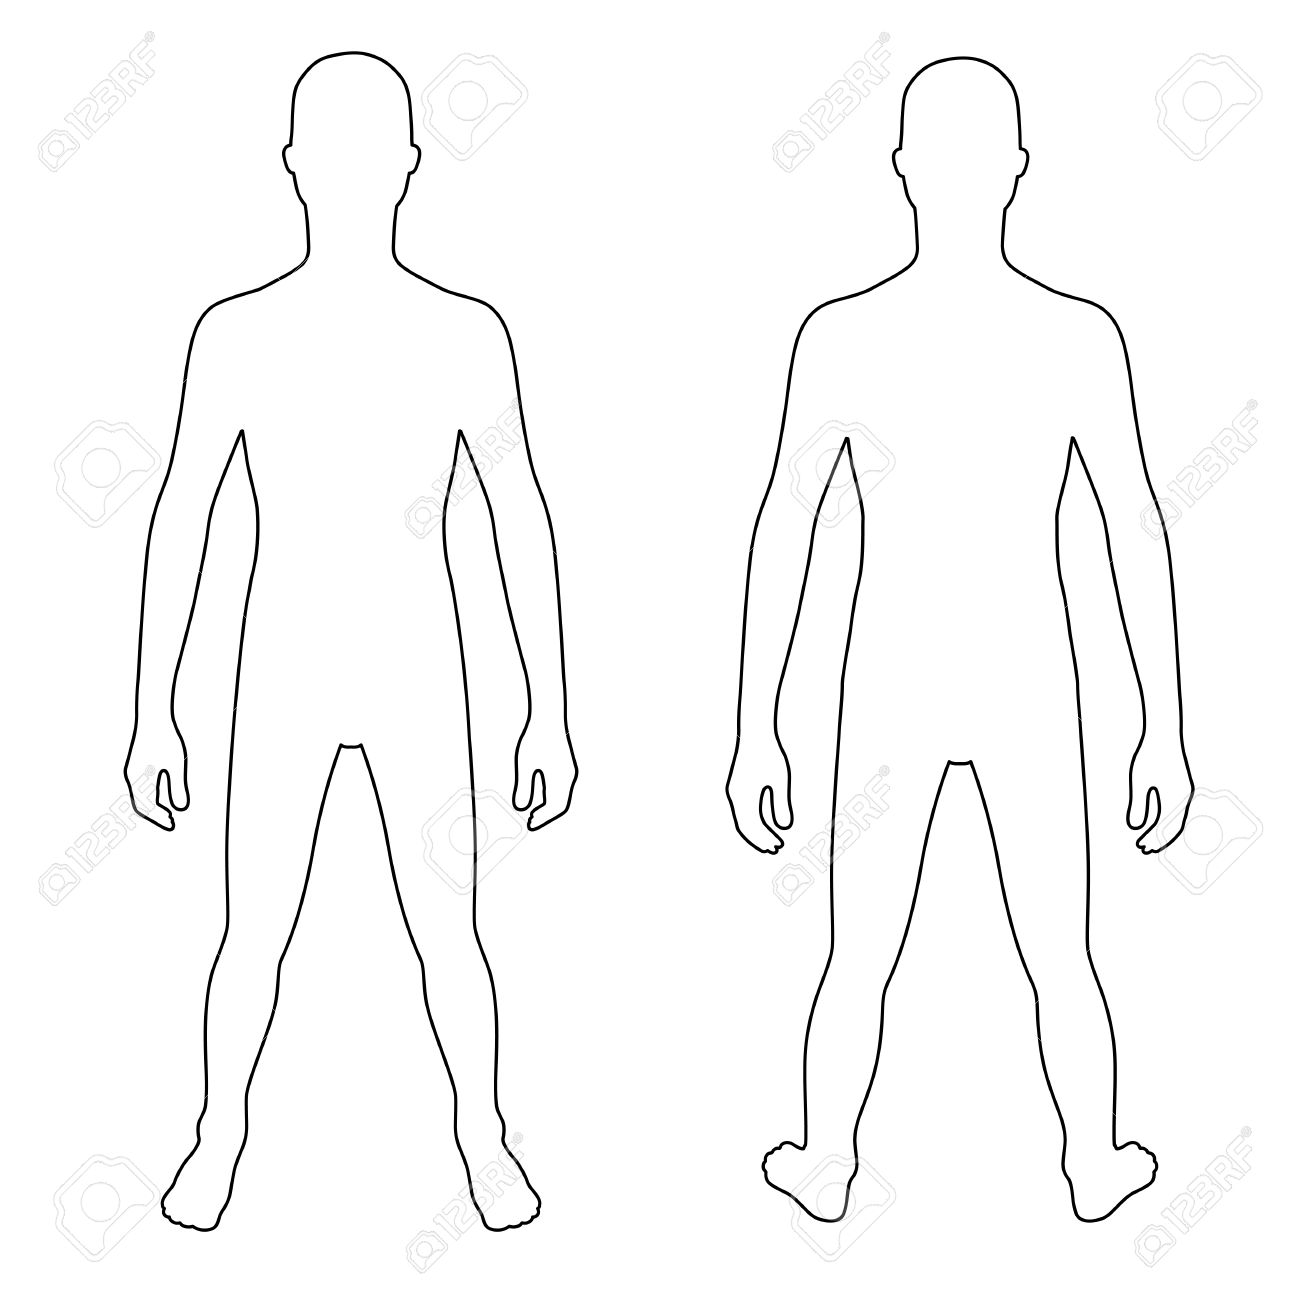 1 017 human body outline front and back cliparts stock vector and rh 123rf com human body outline clipart body outline clipart free